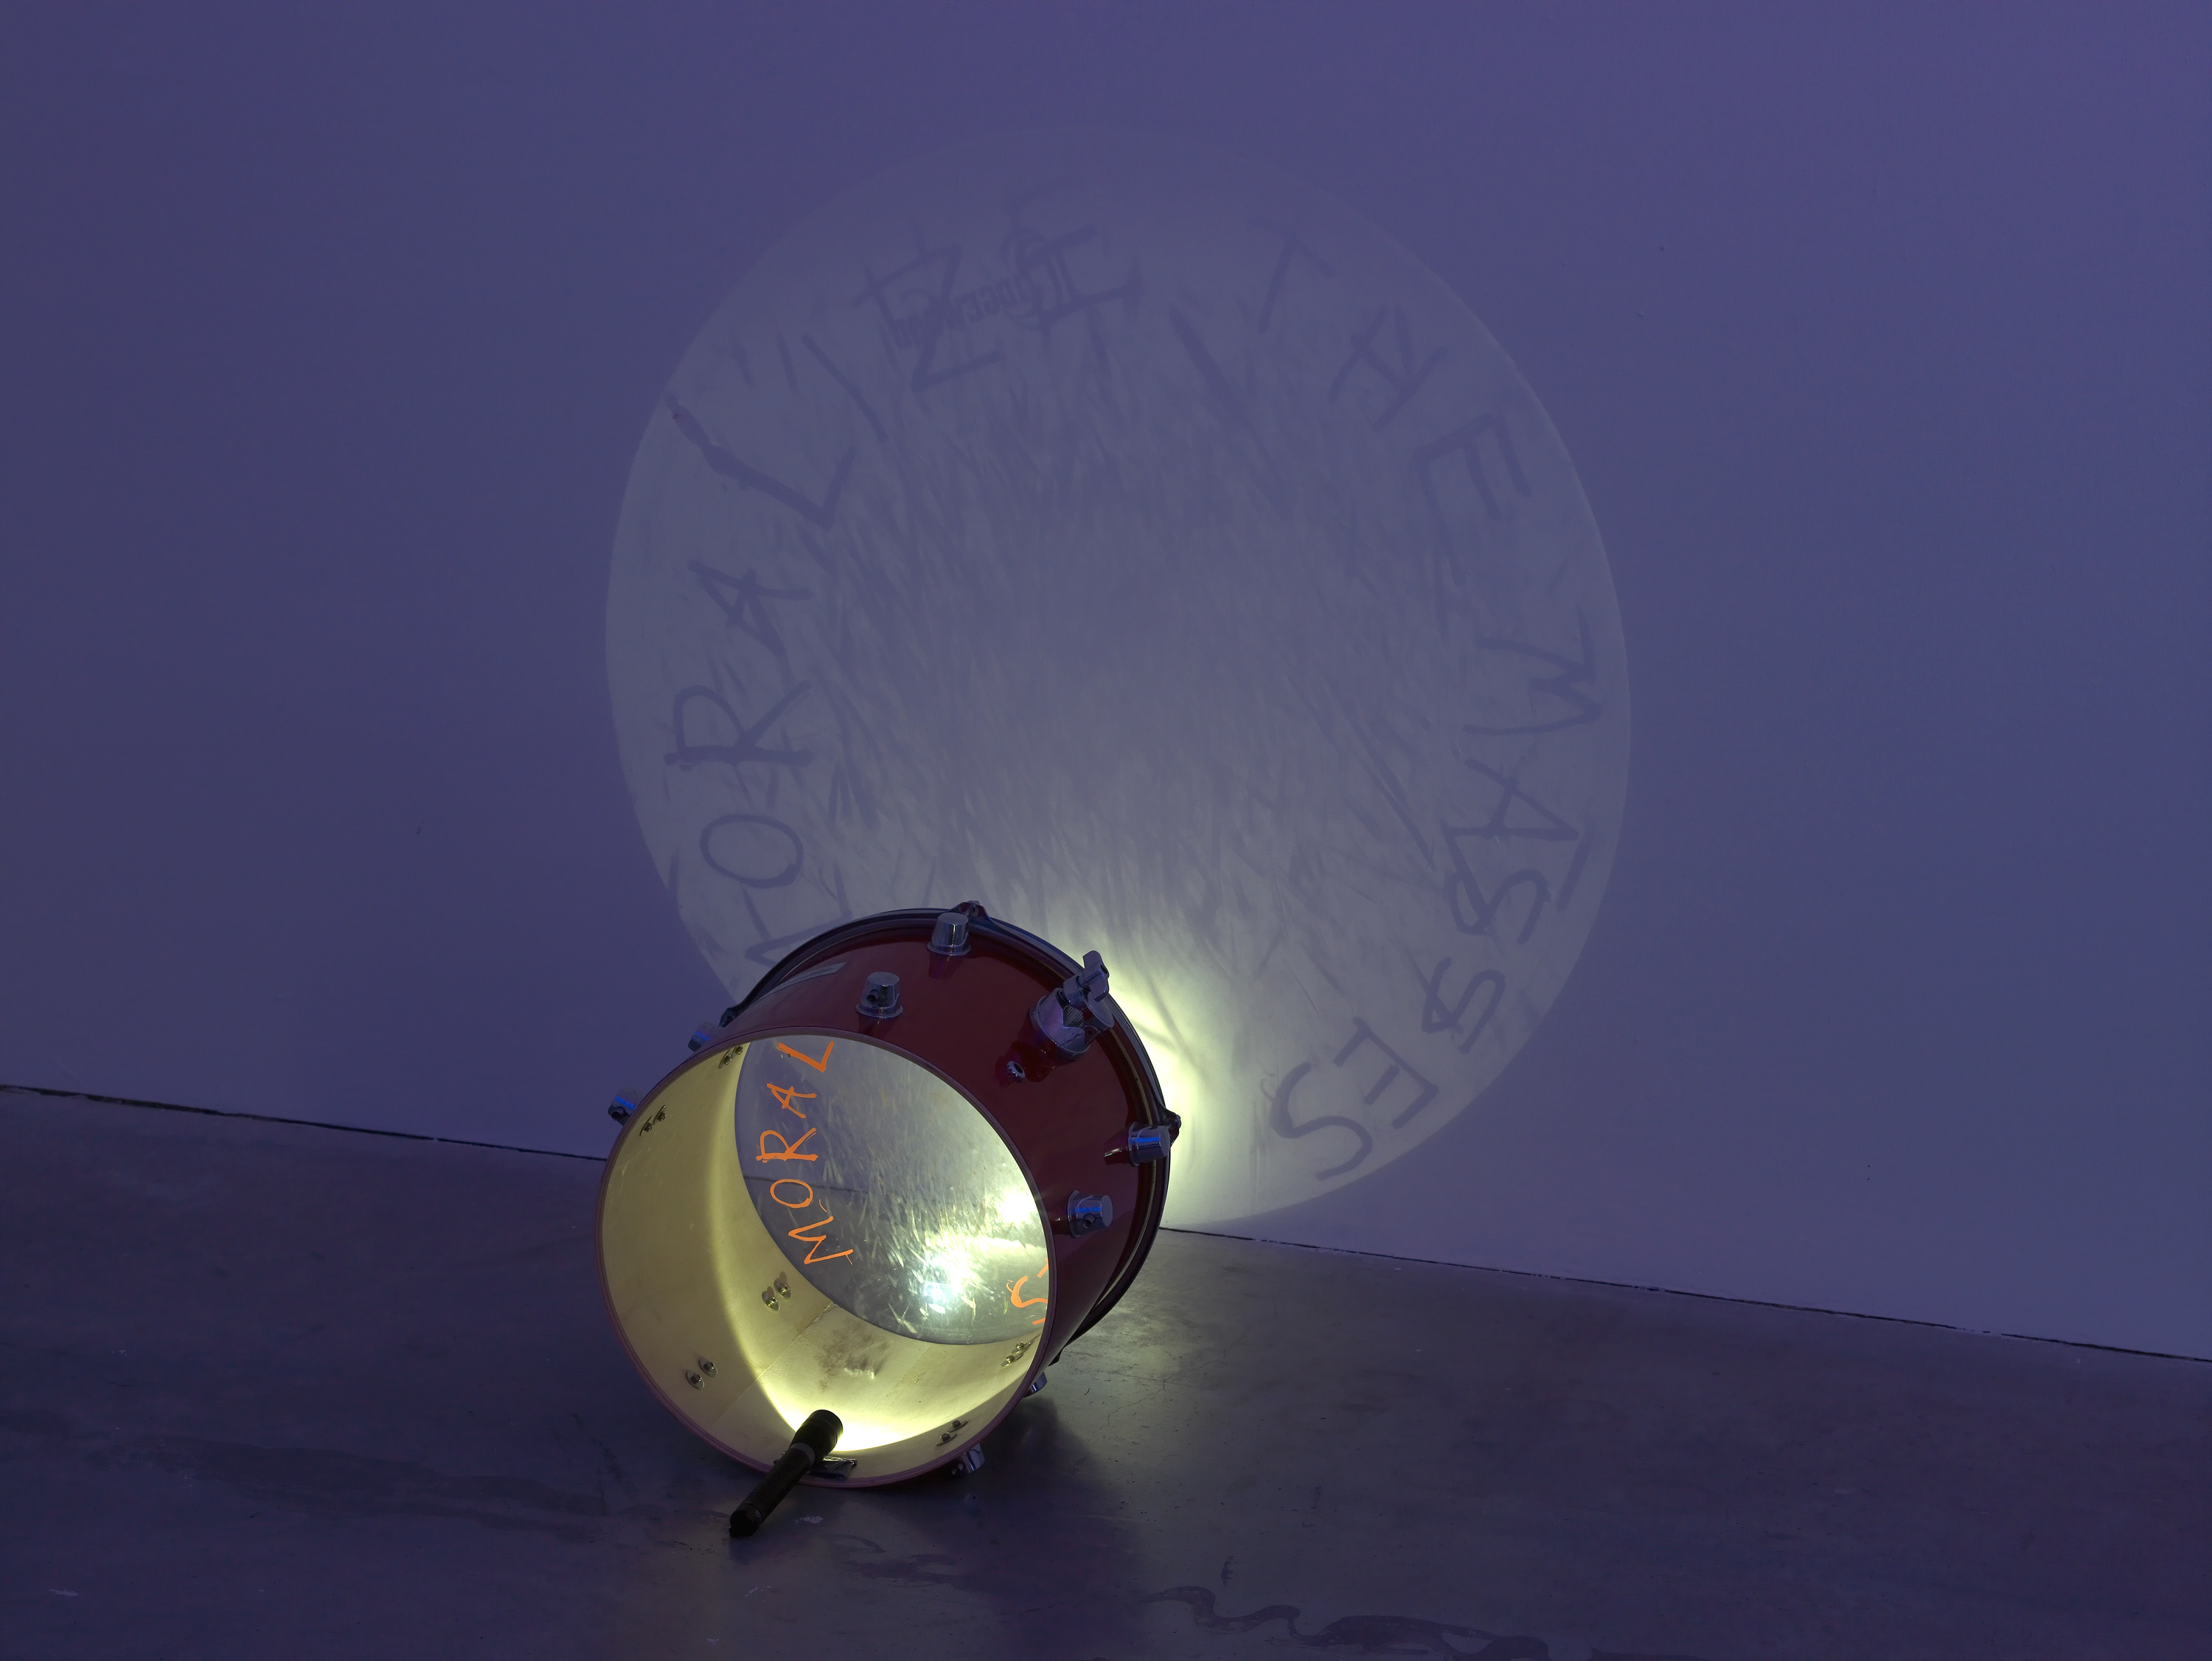 Matt Copson, Moralize The Masses, 2015, drum, torch, drawing, dimensions variable. Reynard Reforms , Matt Copson